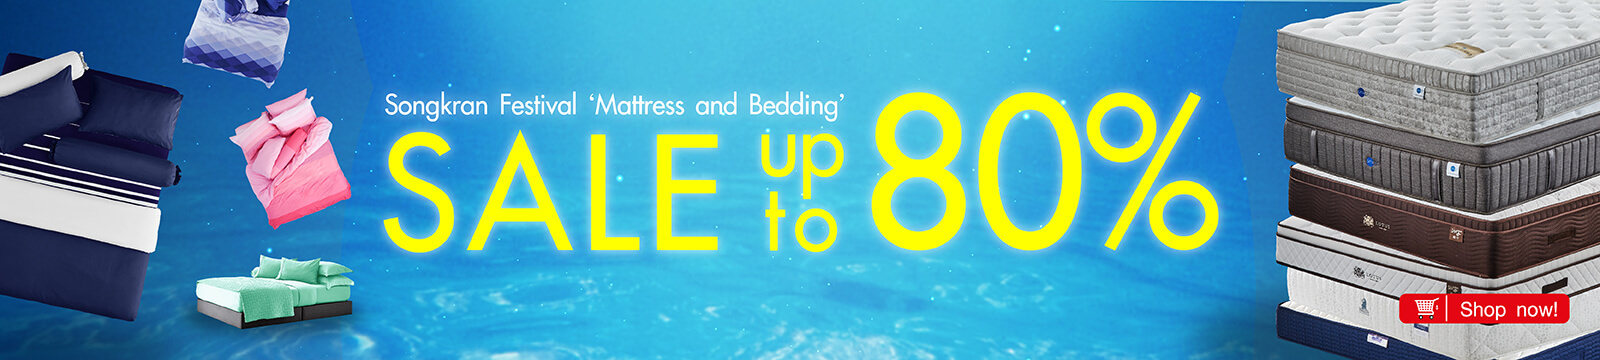 Songkran Sale - Up To 80%